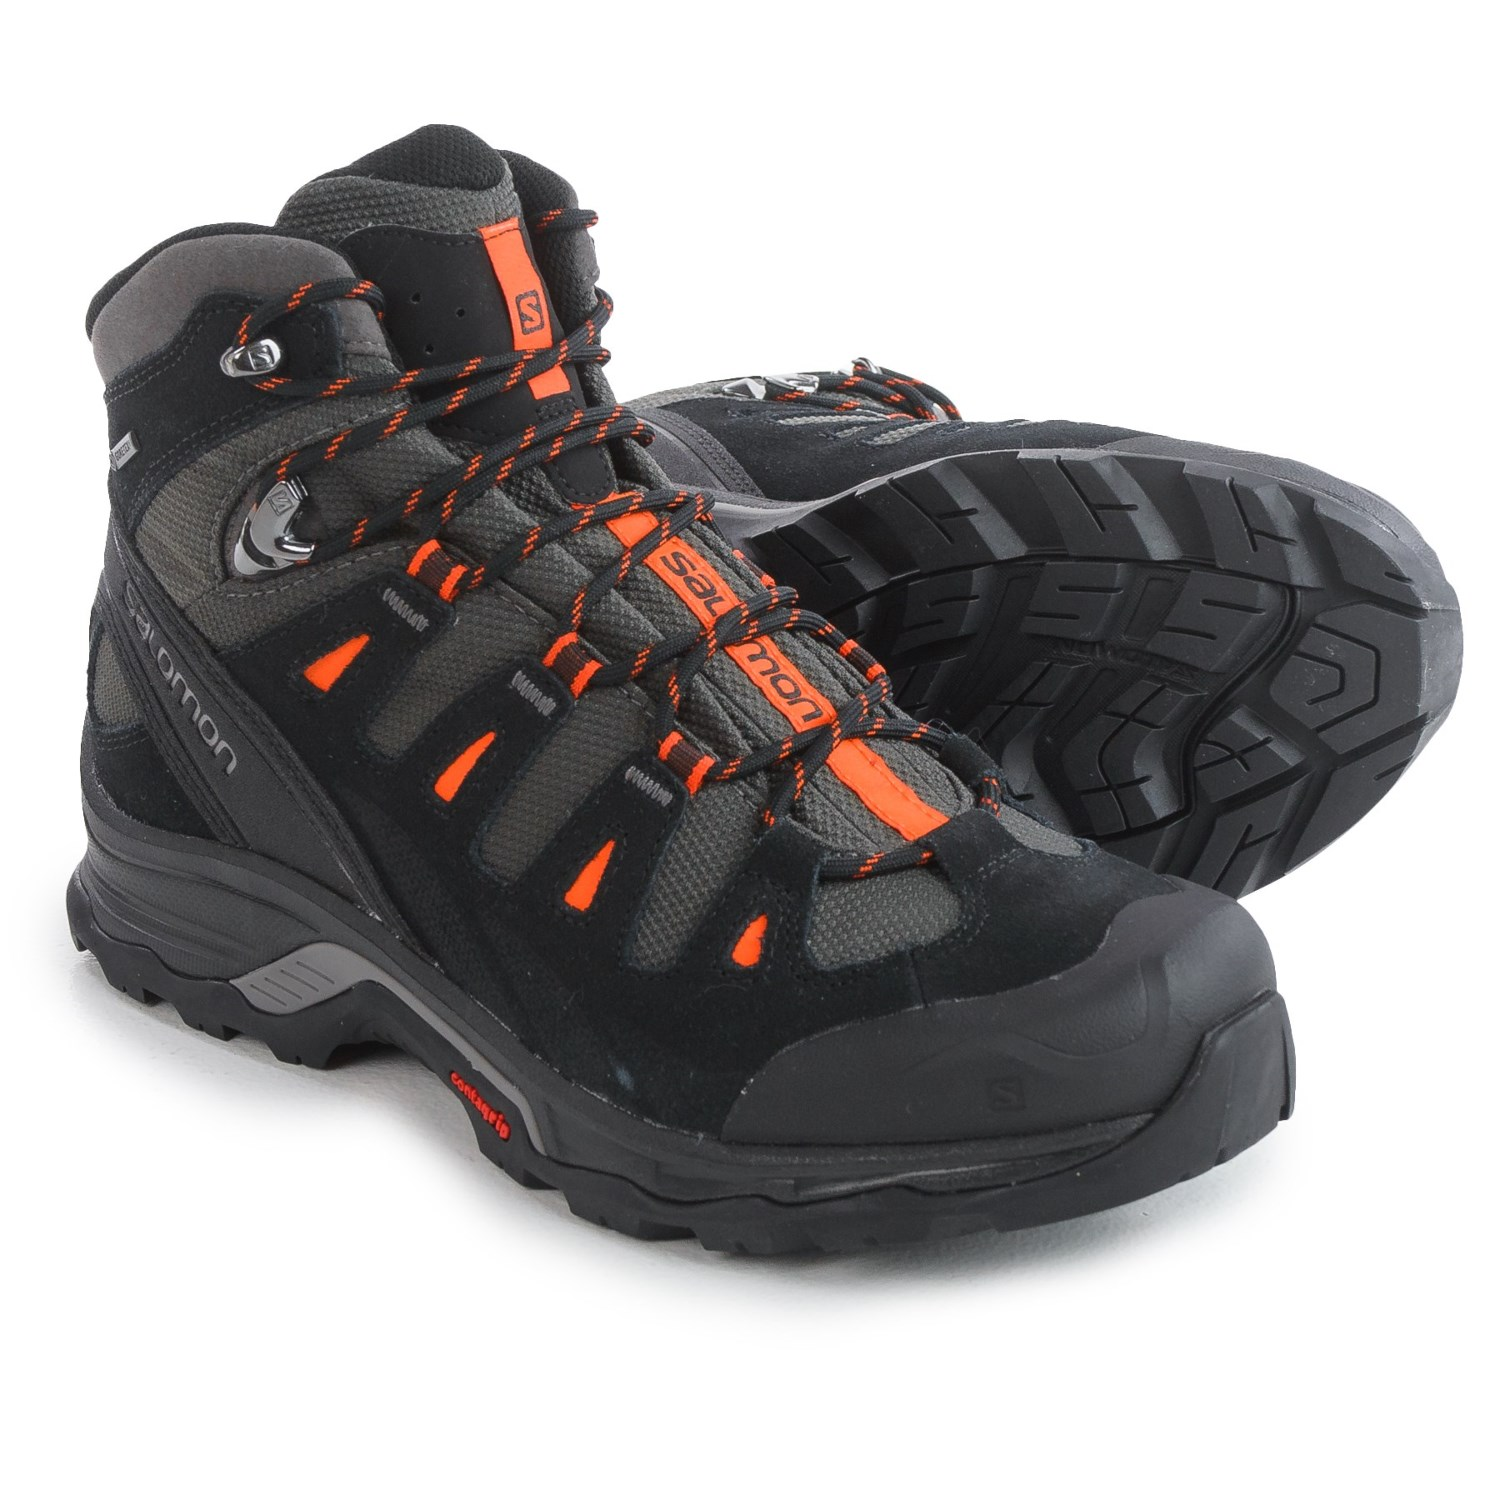 map of tex with Salomon Quest Prime Gore Tex Hiking Boots Waterproof For Men P 184wu on Travel Planning additionally Salomon Quest Prime Gore Tex Hiking Boots Waterproof For Men p 184wu furthermore Welocme To Texas besides 4279642487 as well Index.